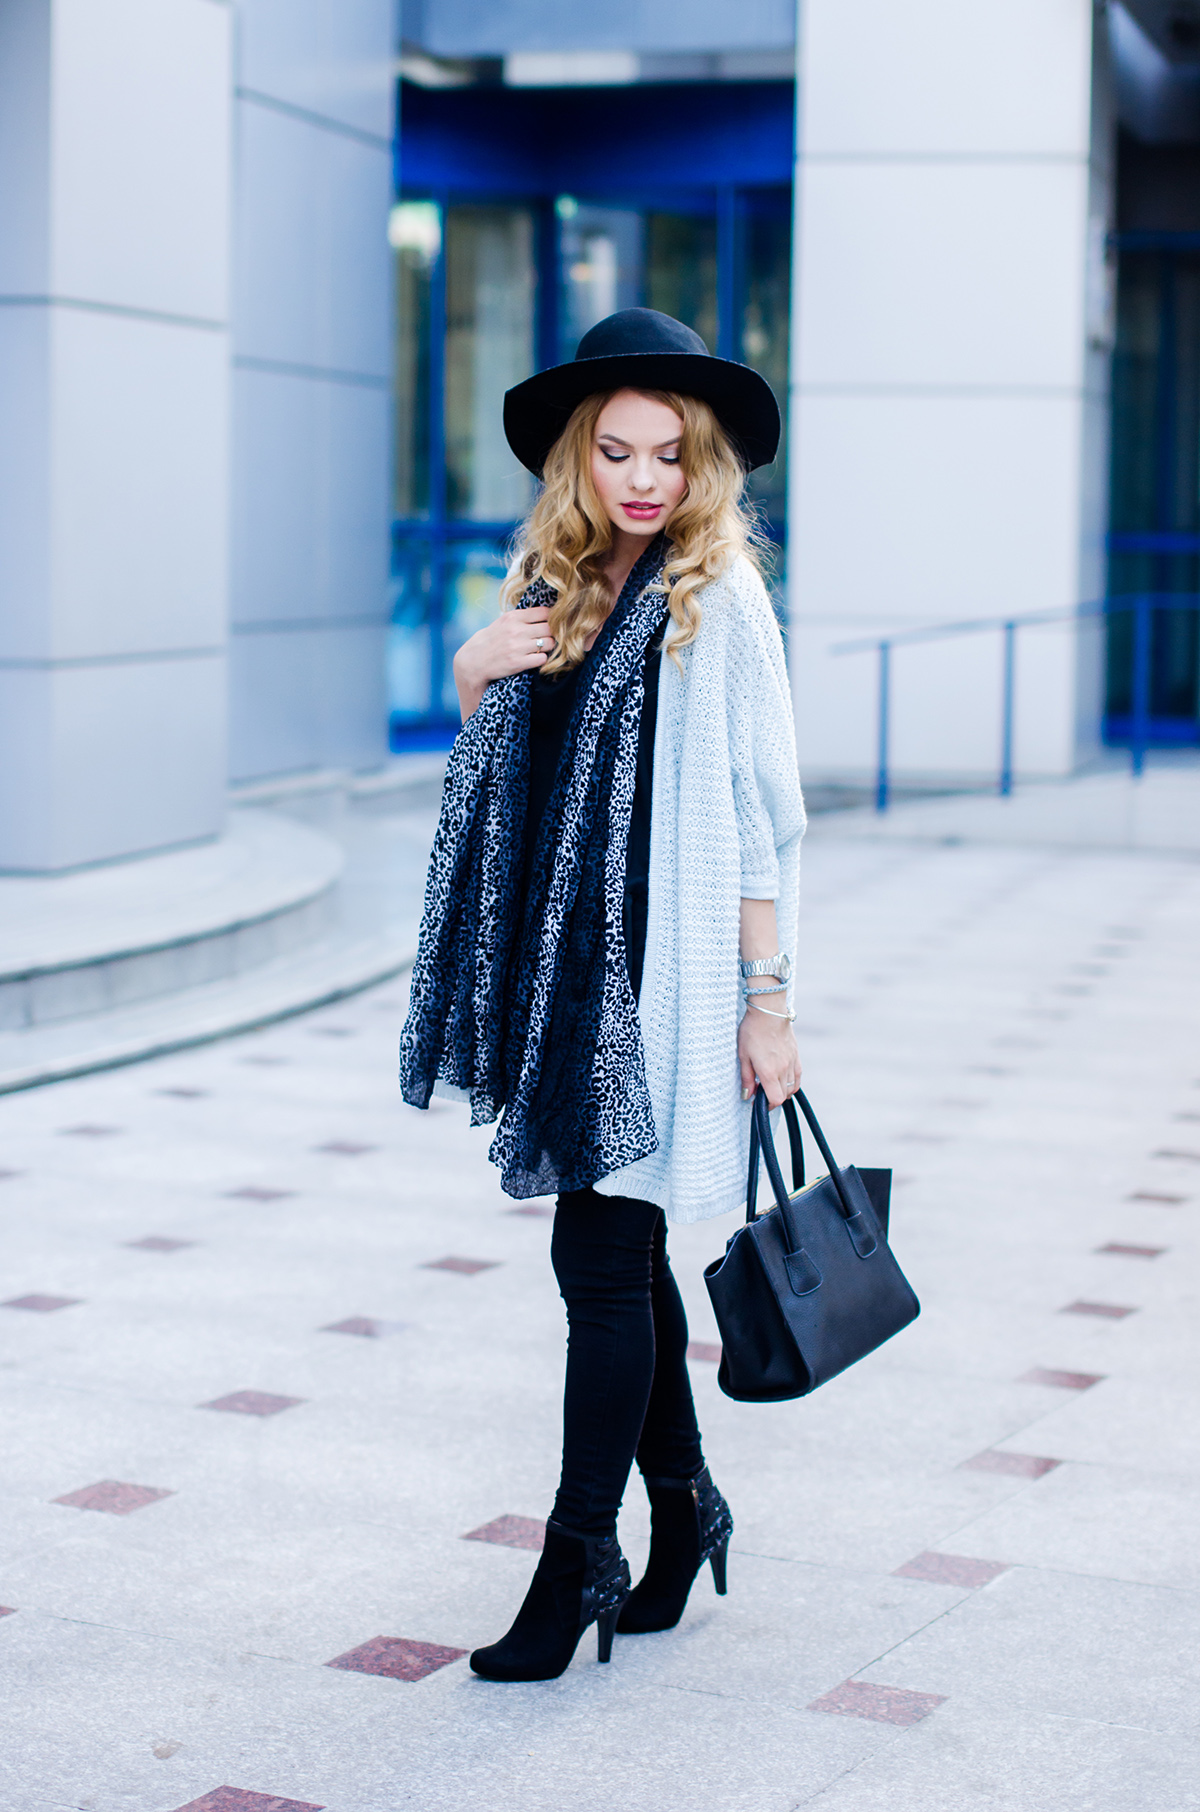 vero-moda-blue-fluffy-cardigan-black-outfit-hat-curls (5)